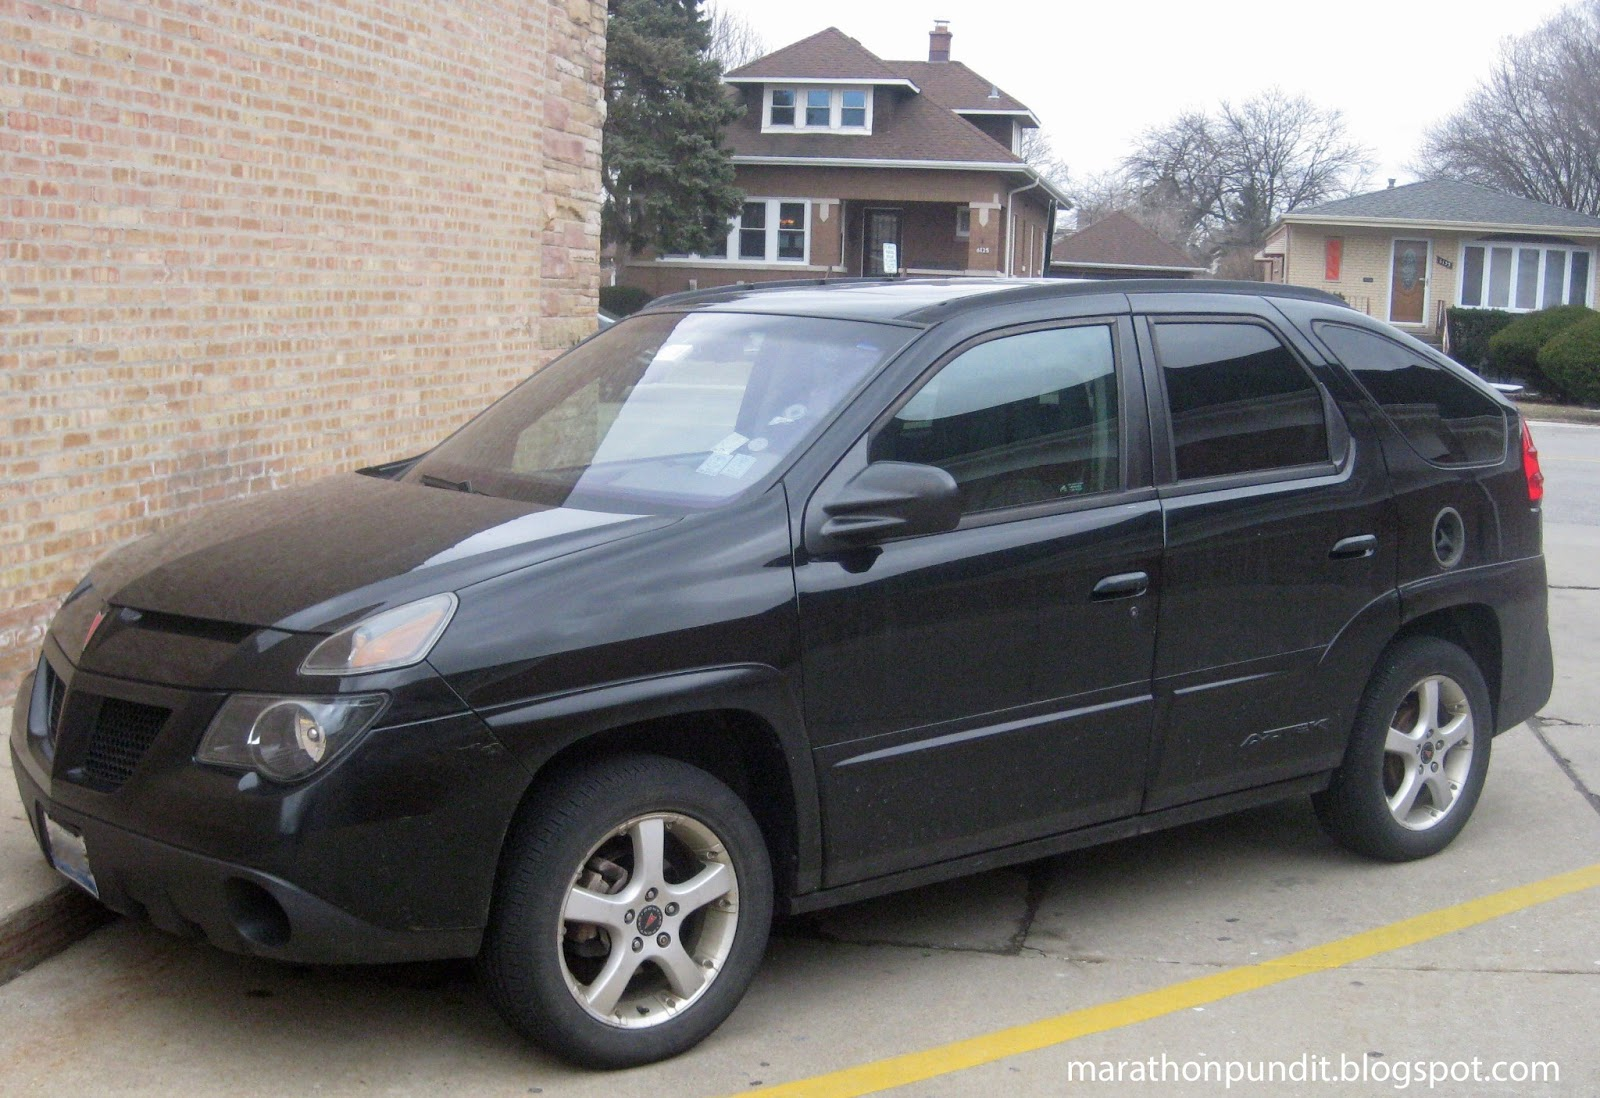 Pictured is a 2005 black aztek which i photographed yesterday here in morton grove edmunds com s opinion of the vehicle was the most damning declaring